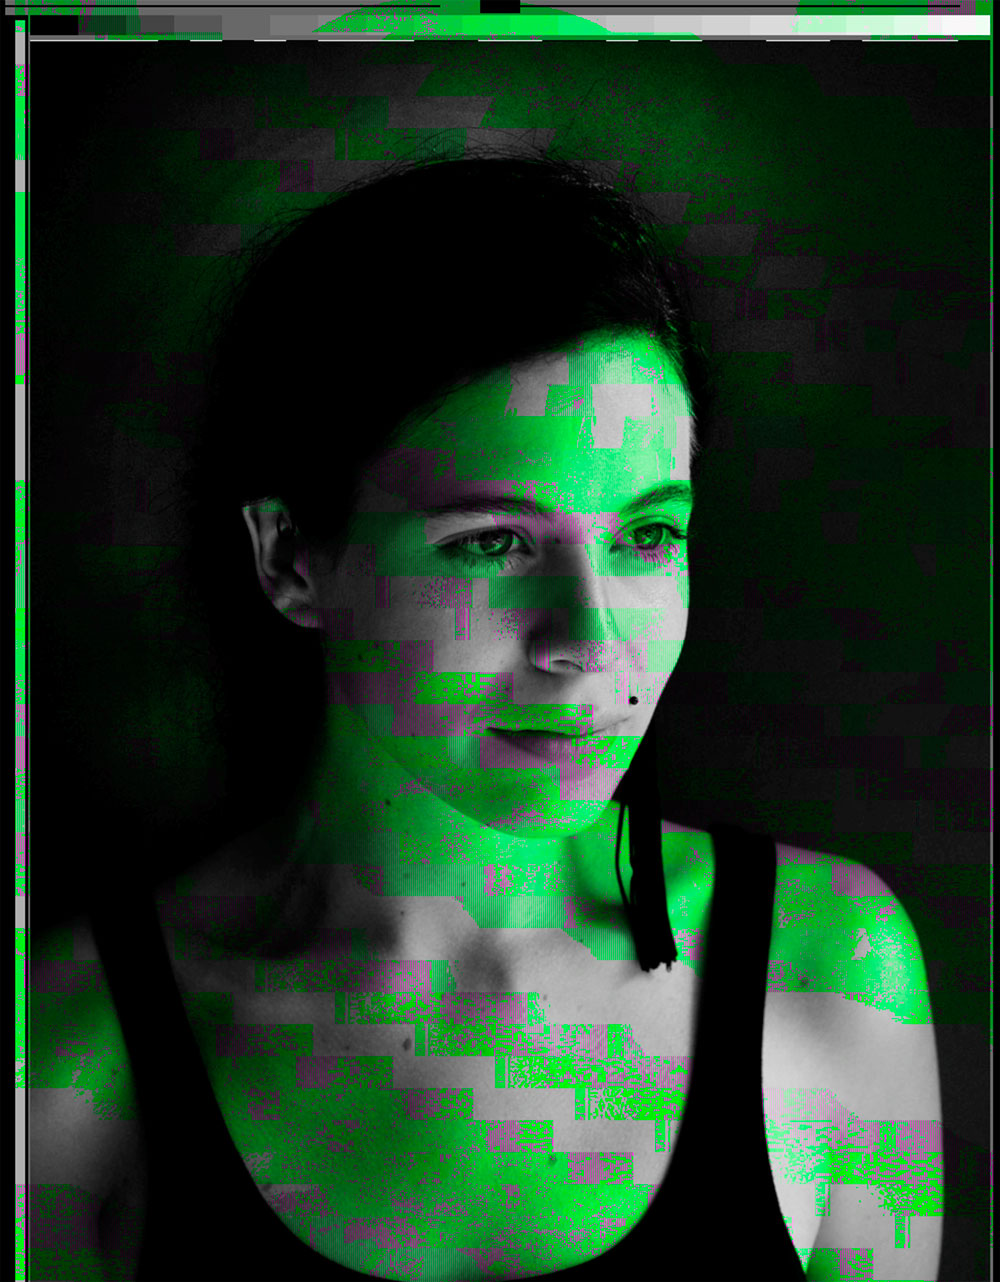 KELLY-GLITCH-VIDEO-1.jpg